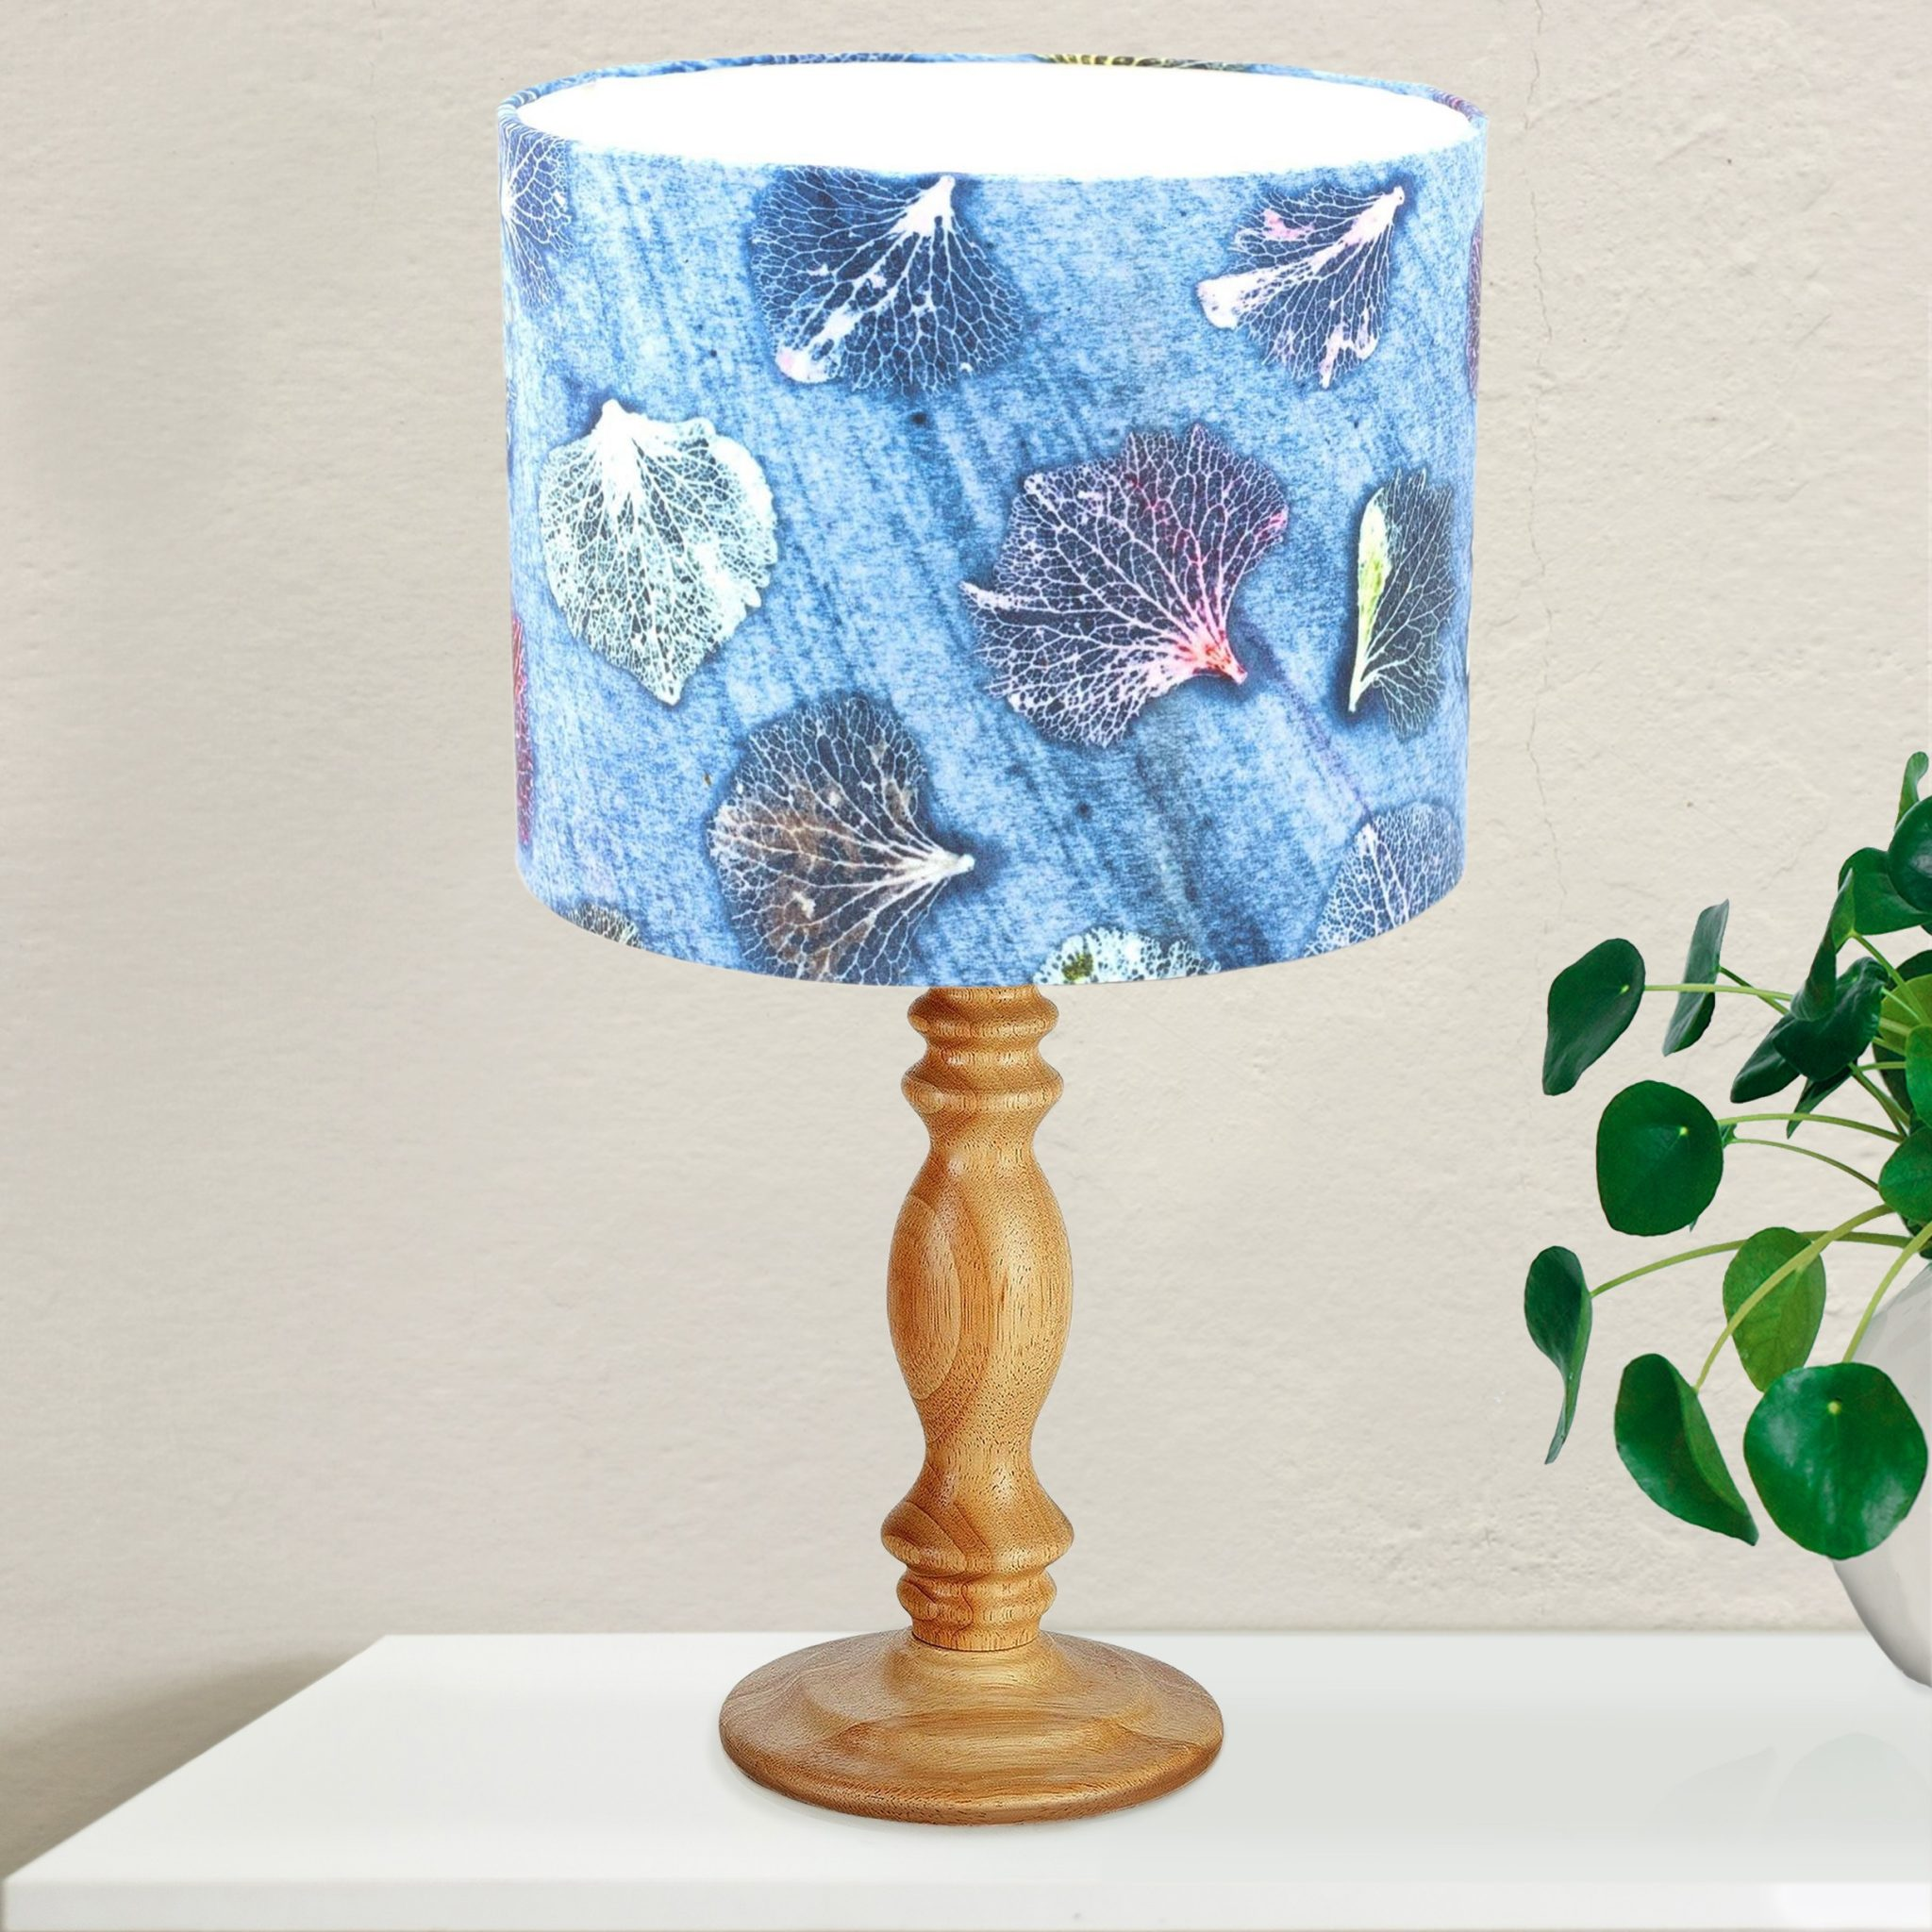 Living Room Lamp Shades: White & Blue Lamp Shade For The Living Room